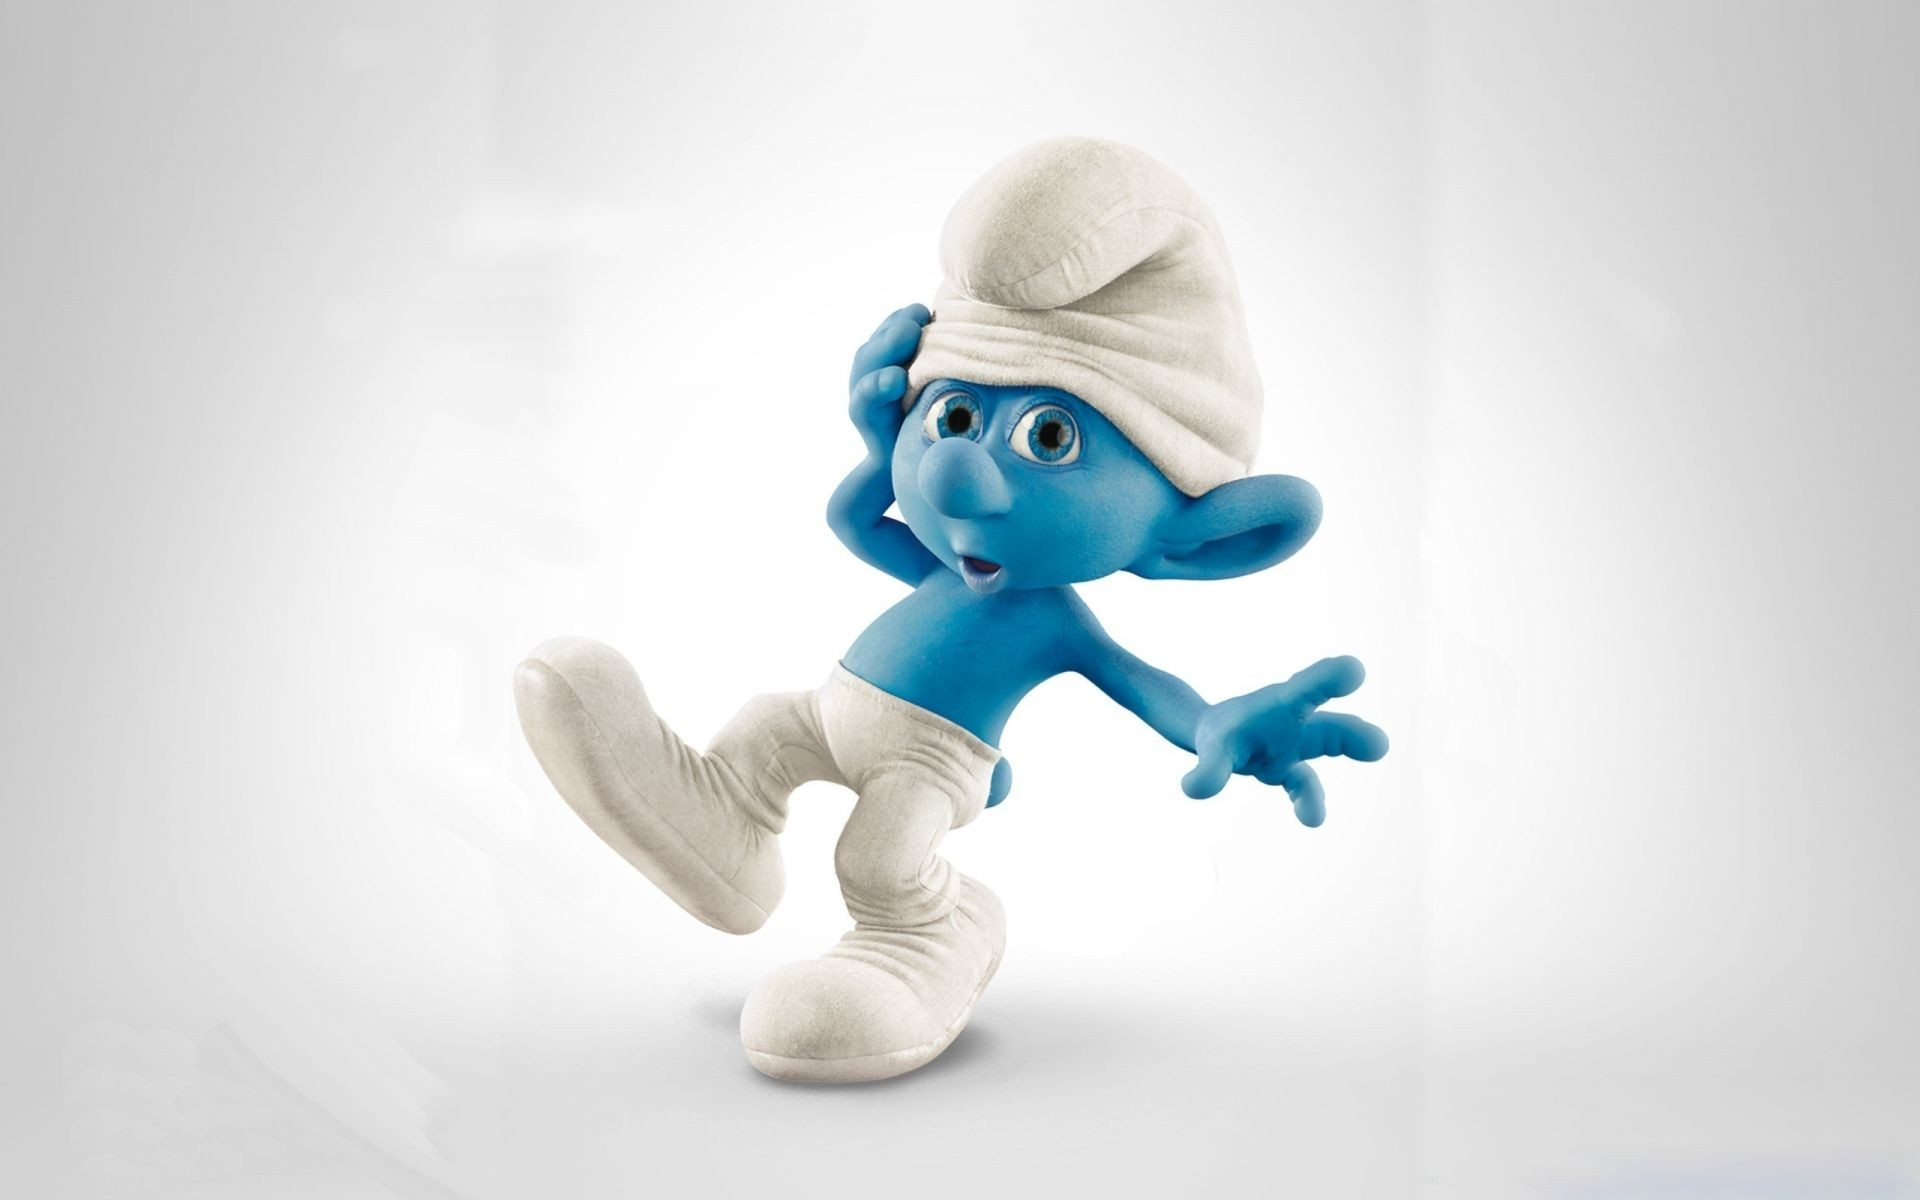 character the Smurfs the smurfs blue skin Cartoon